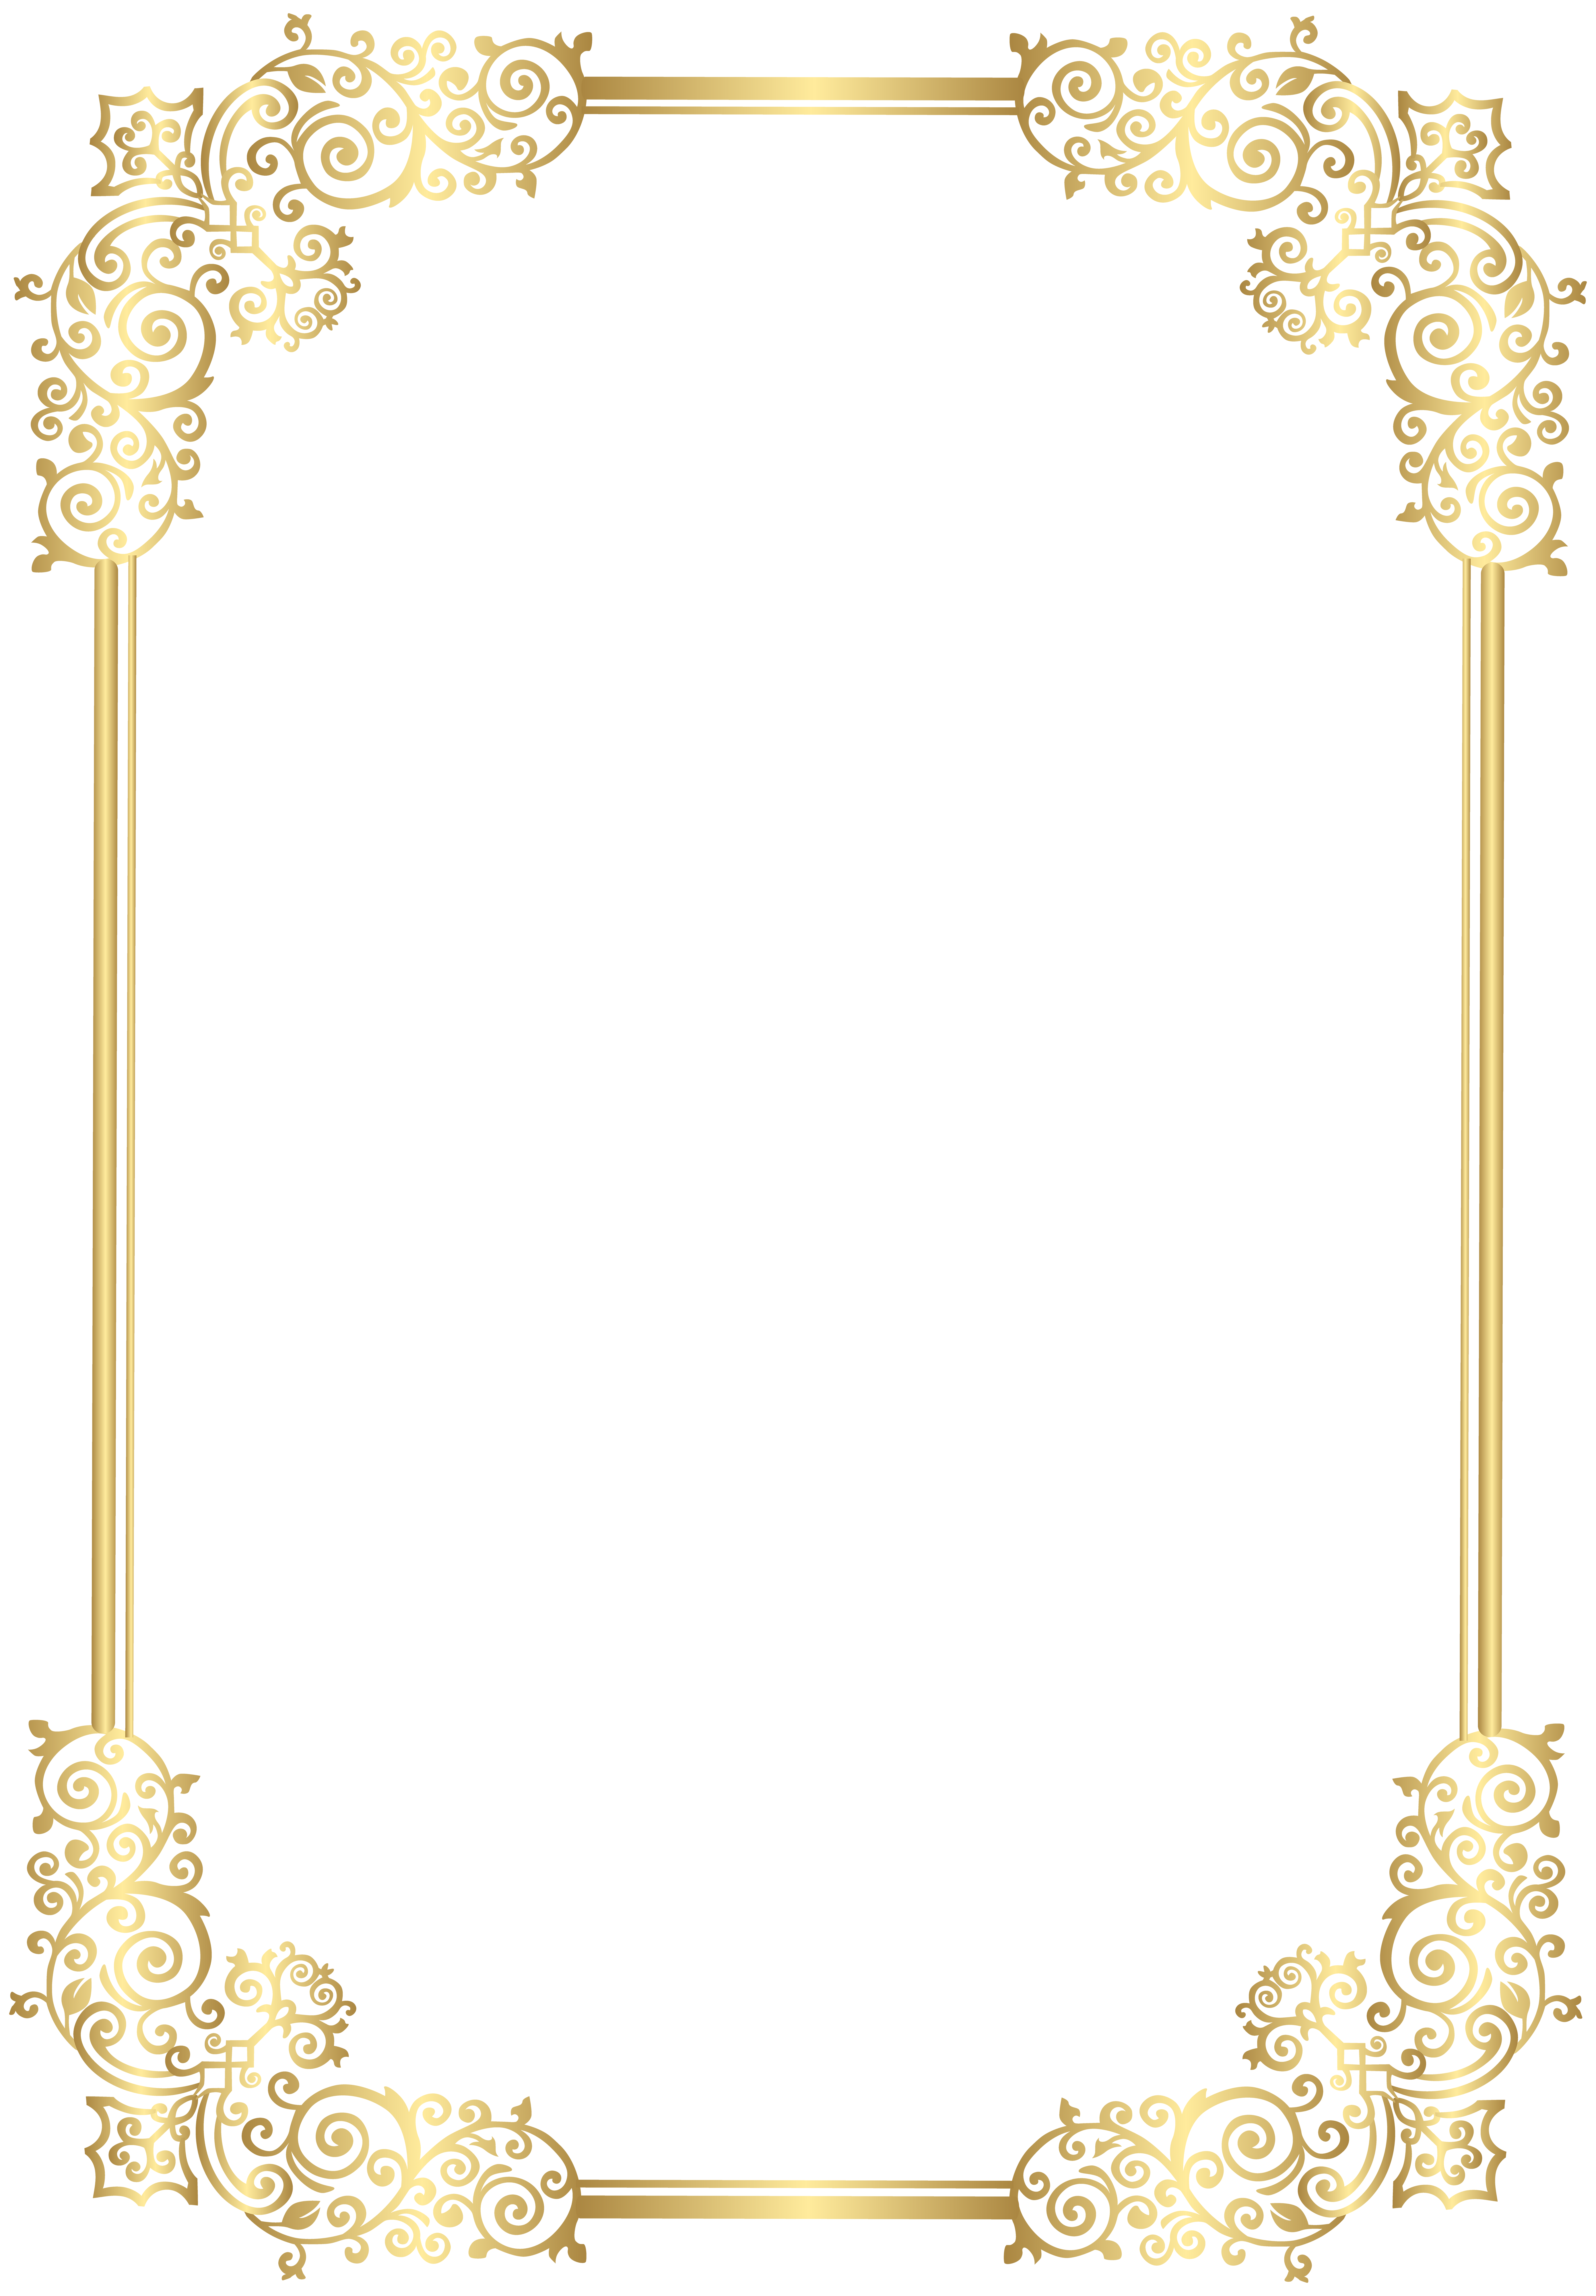 Frame decoration clipart transparent Decorative frame clipart clipart images gallery for free download ... transparent